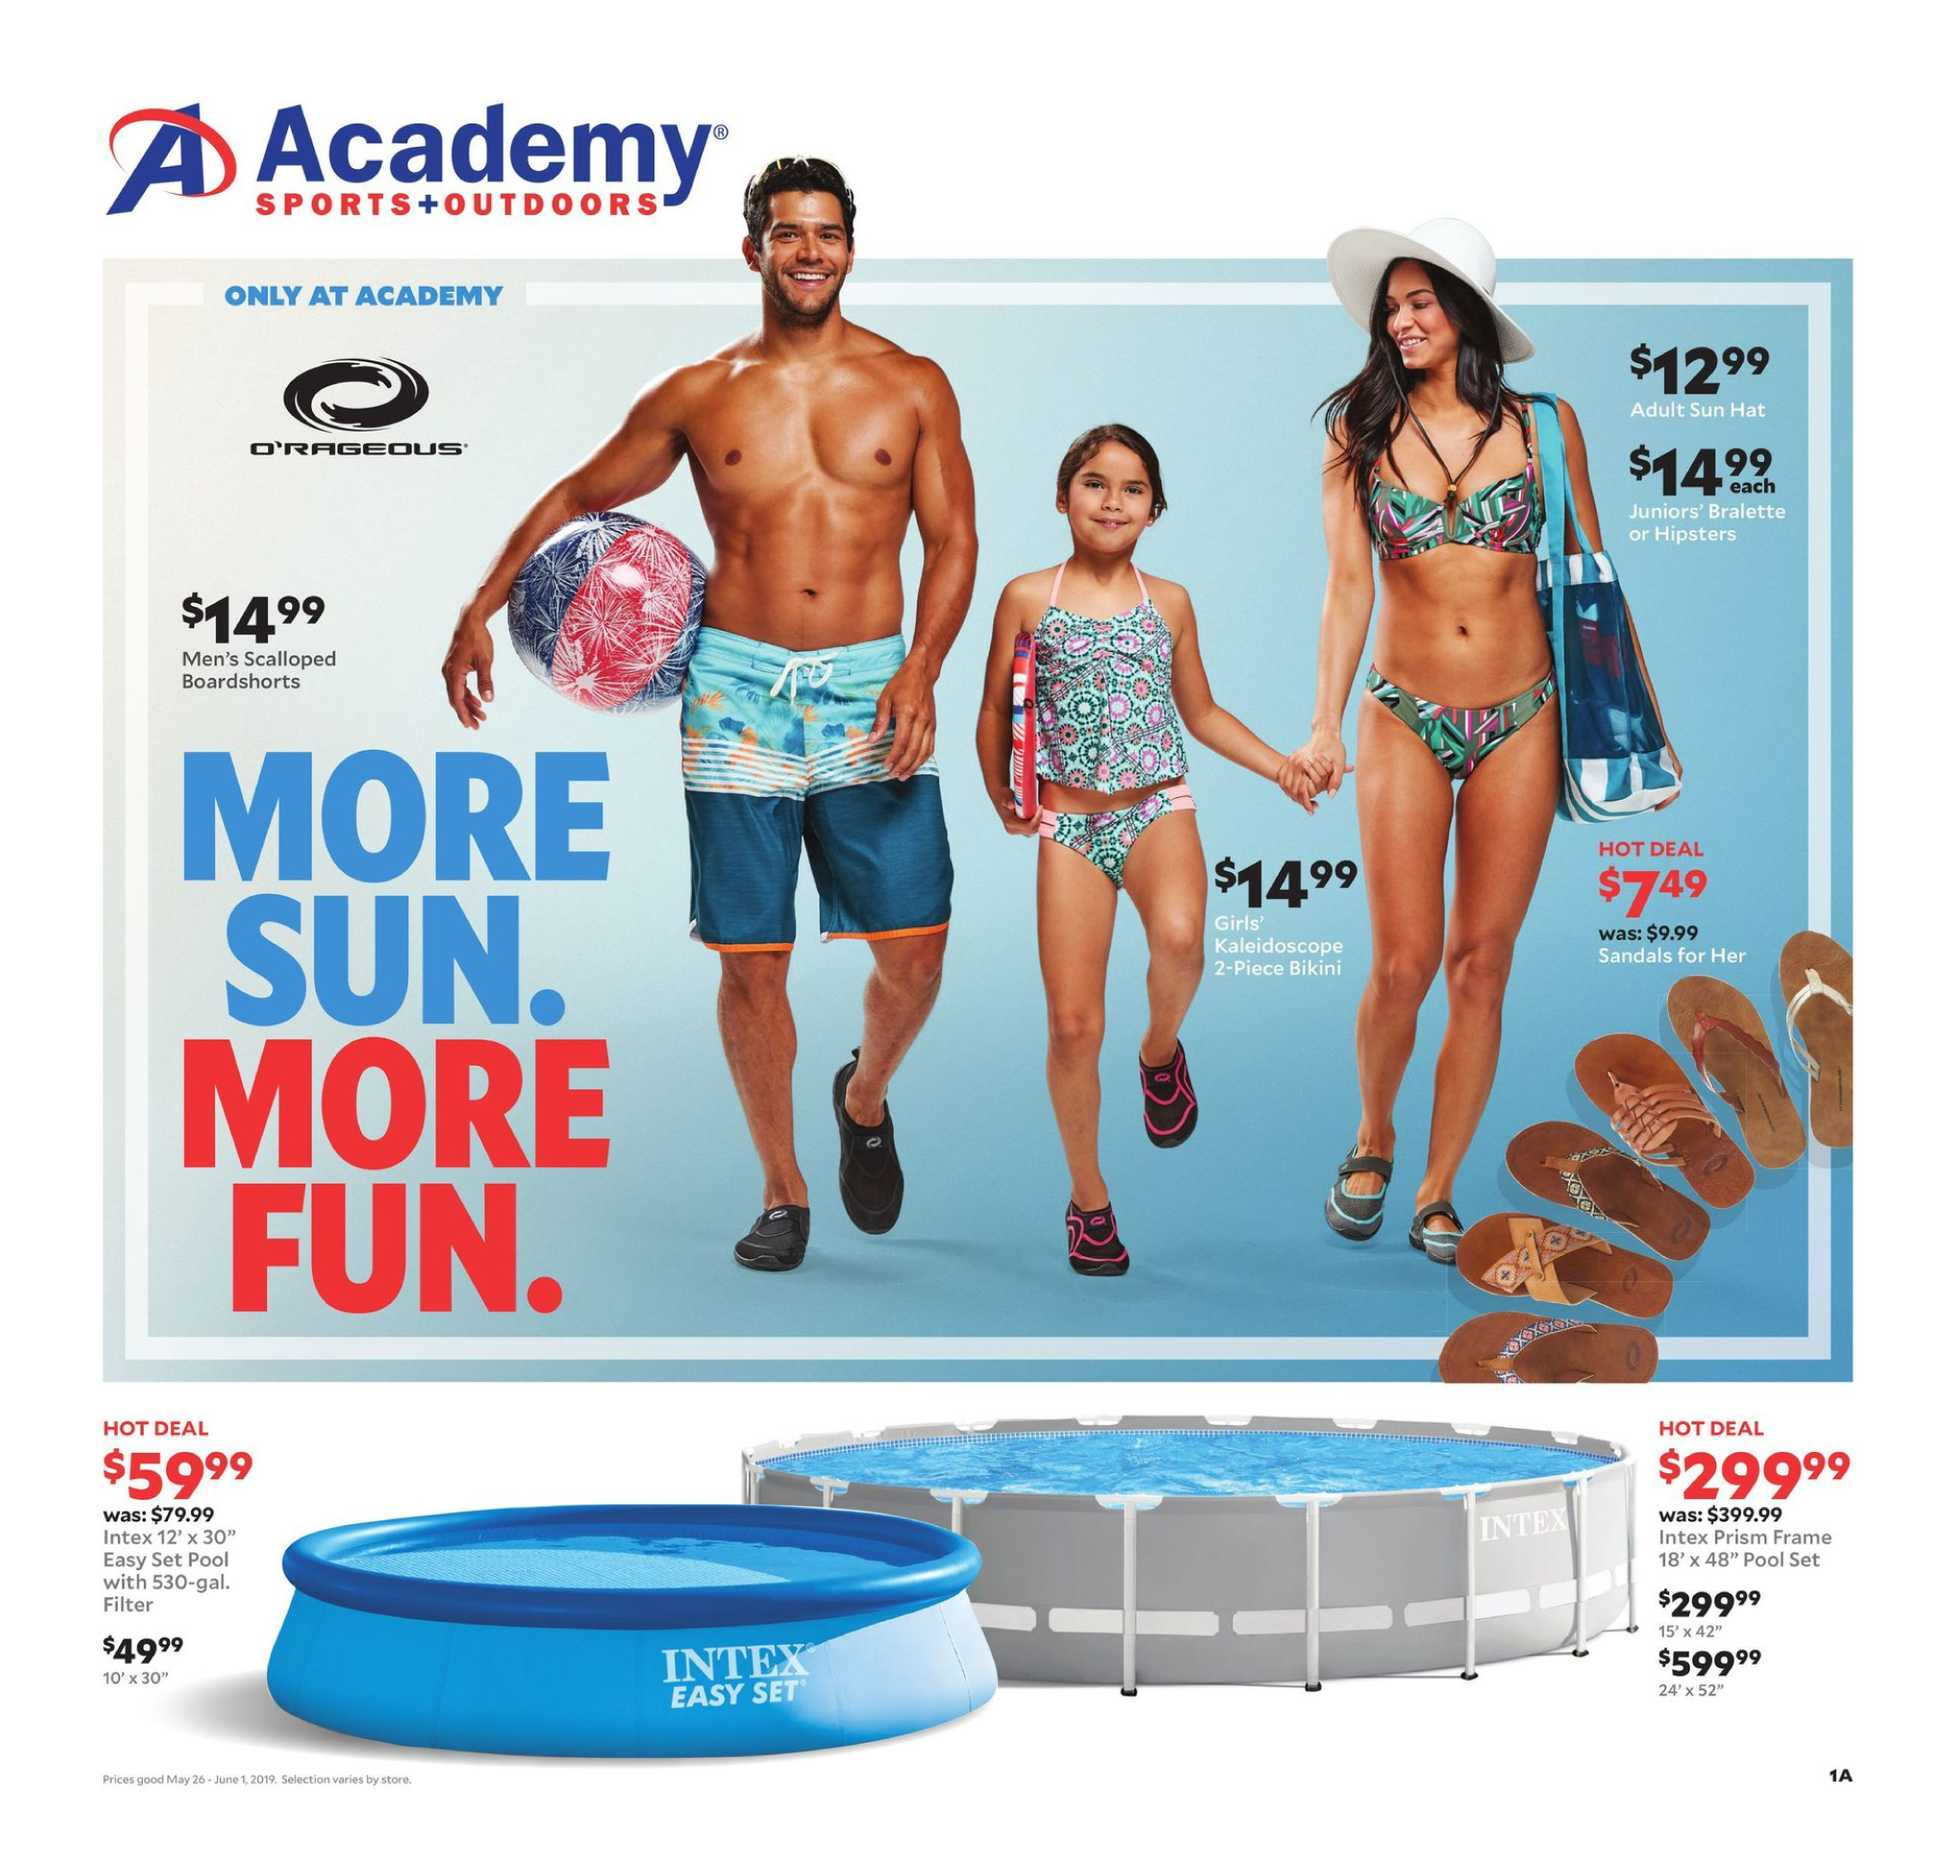 Academy Sports + Outdoors - promo starting from 05/26/19 to 06/01/19 - page 1.